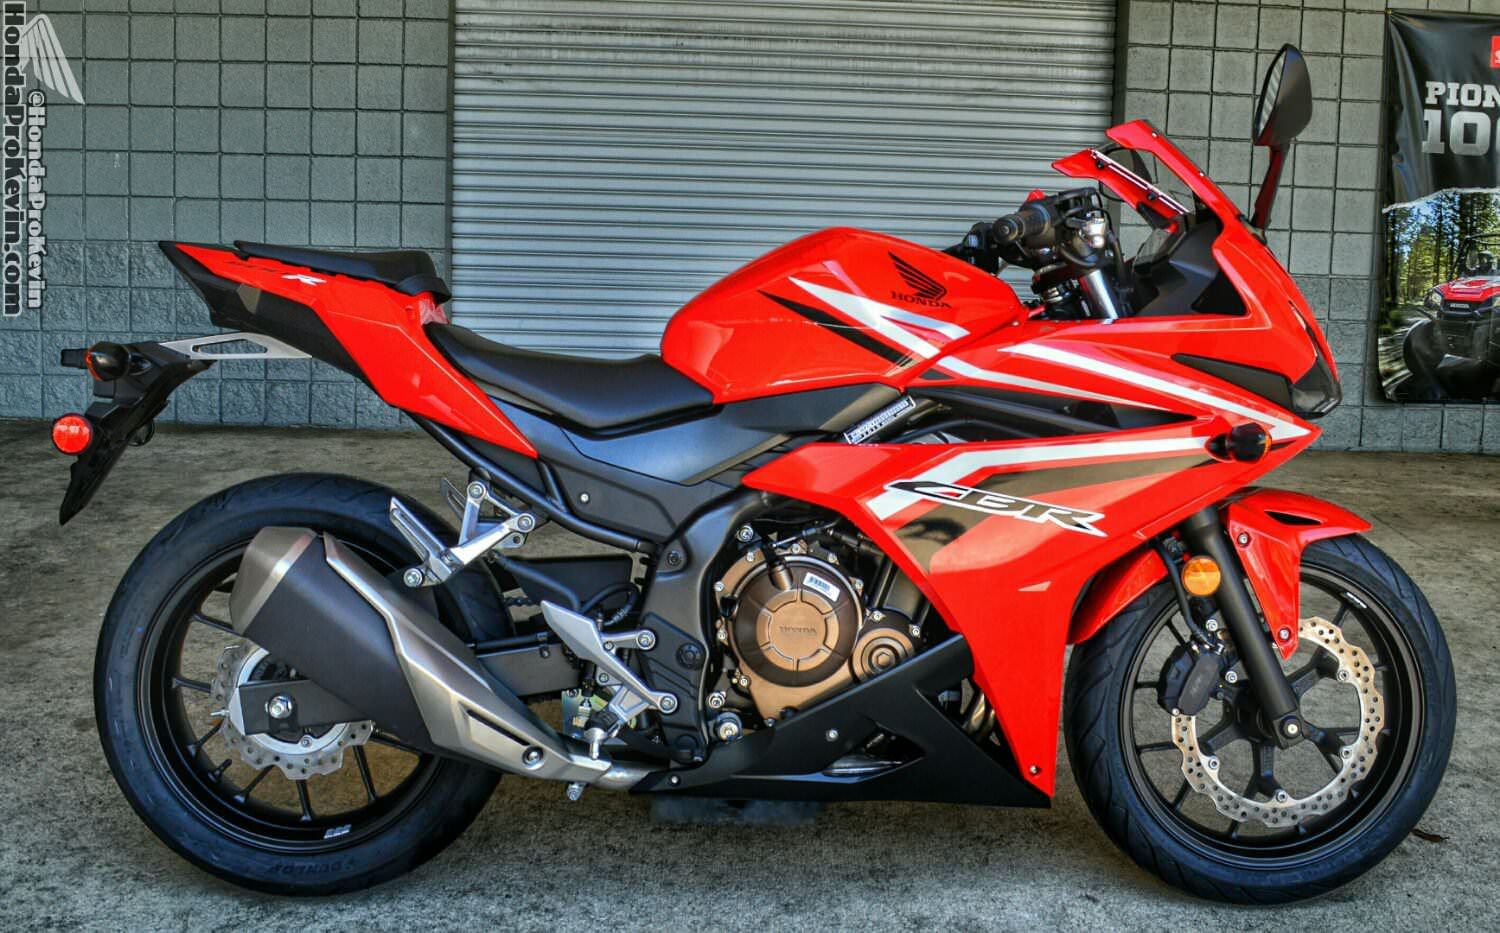 2018 Honda Cbr500r Review Detailed Specs Rd Development Info Cover Shock Cbr 150r New Concept Motorcycles From Click Here